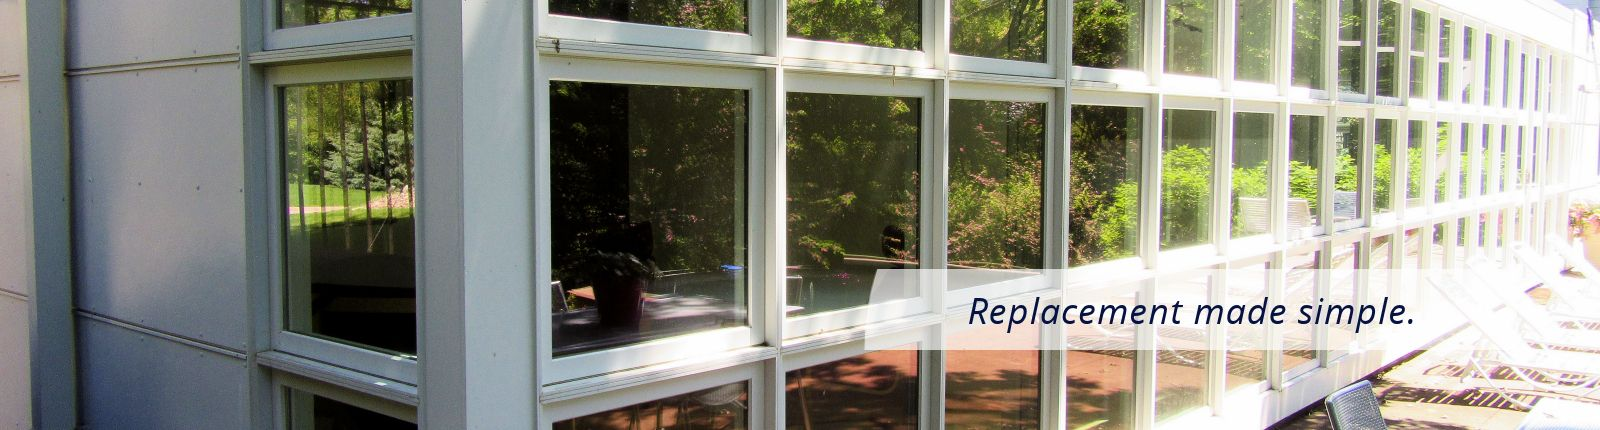 Window Replacement Made Simple Des Moines Iowa